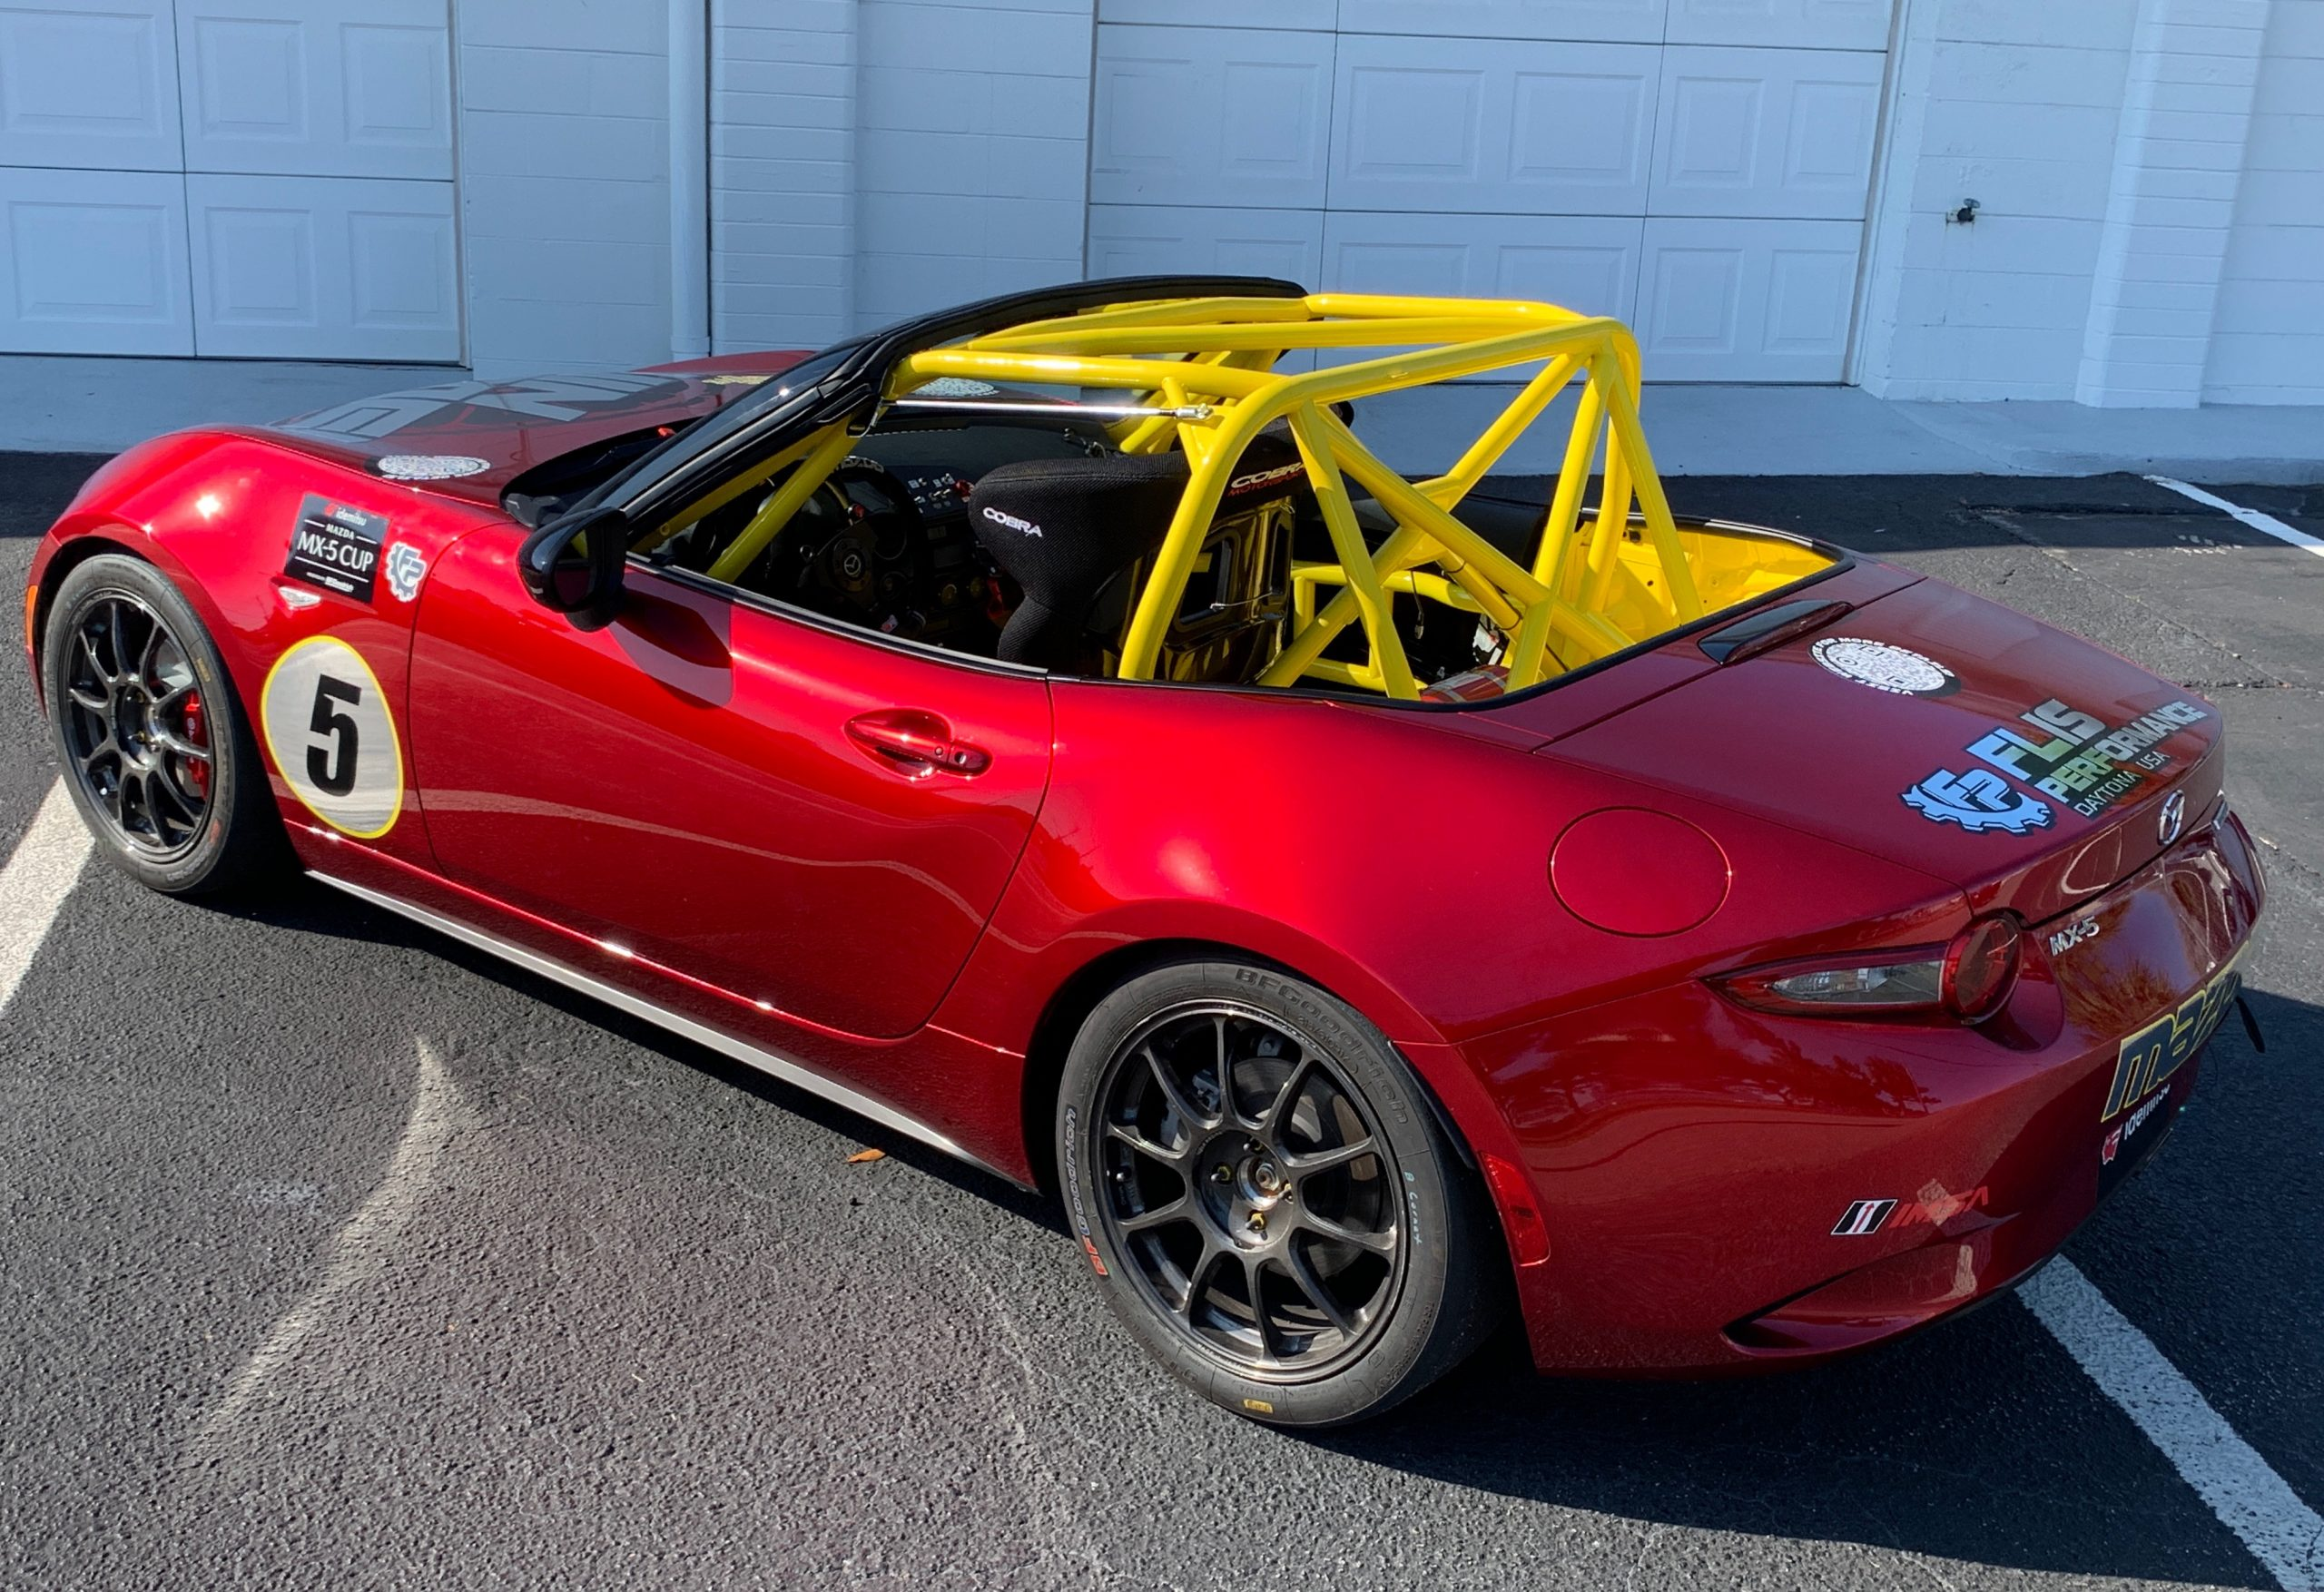 It's the white flag lap for your chance to win a Global MX-5 Cup Car with Lemons of Love